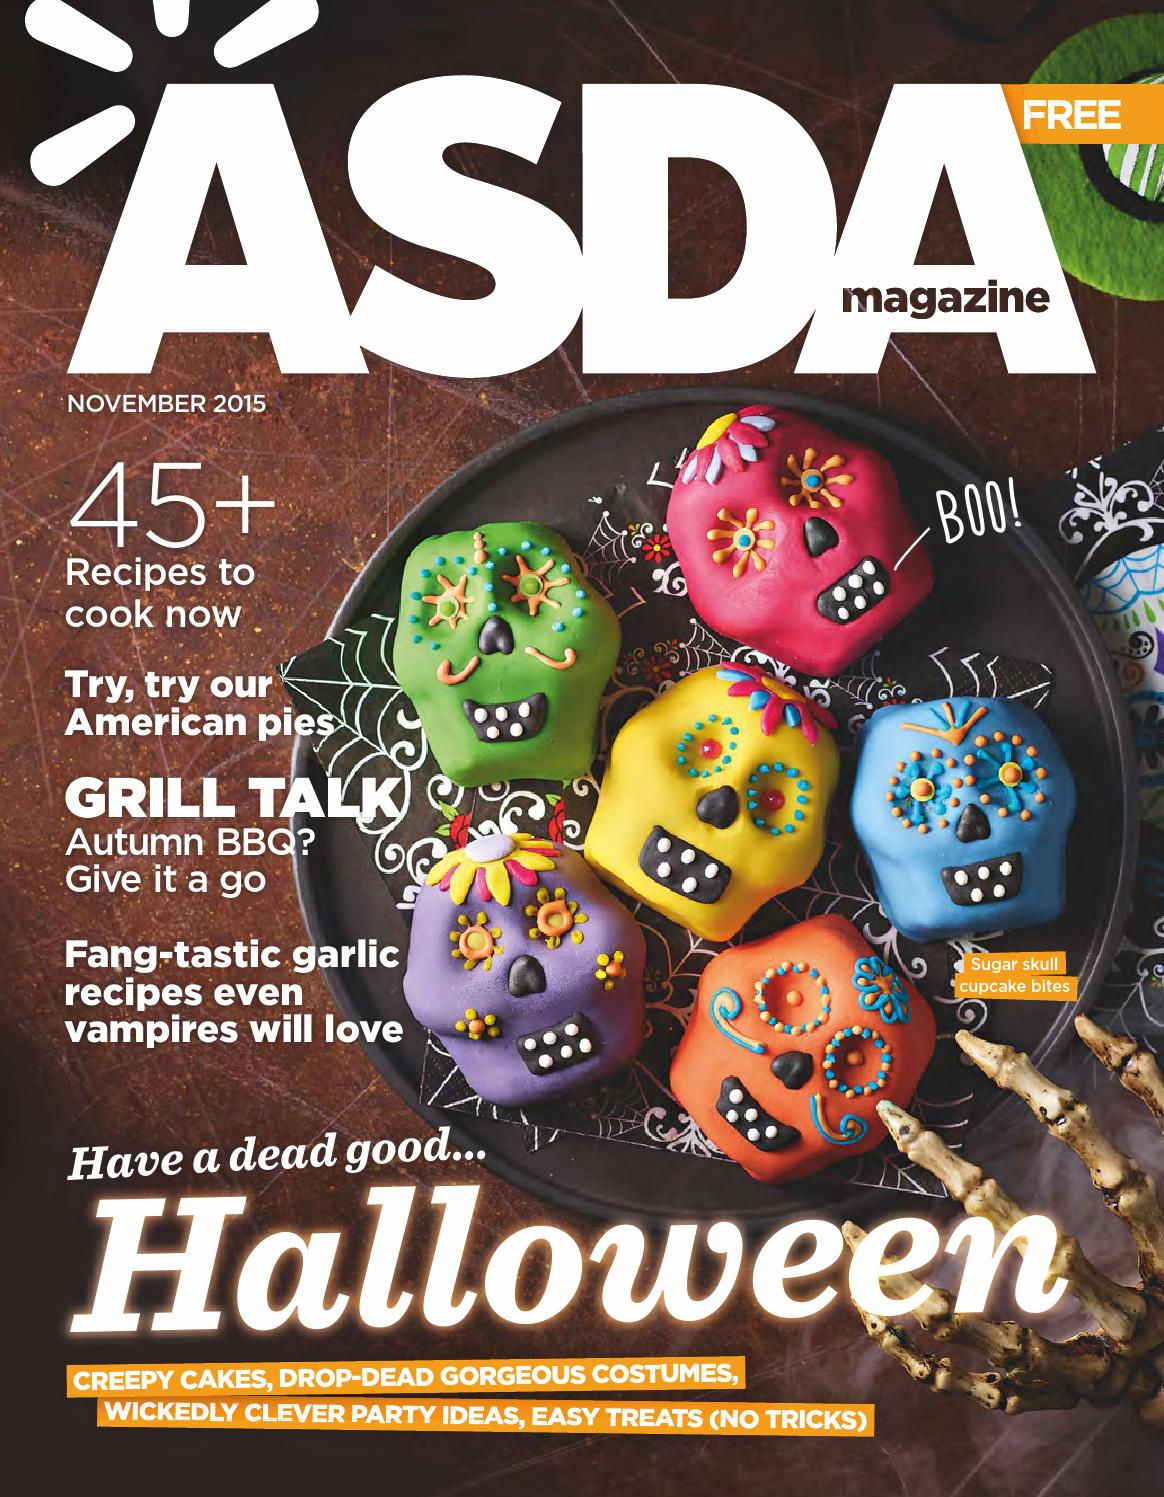 Asda magazine december 2014 by asda issuu solutioingenieria Images